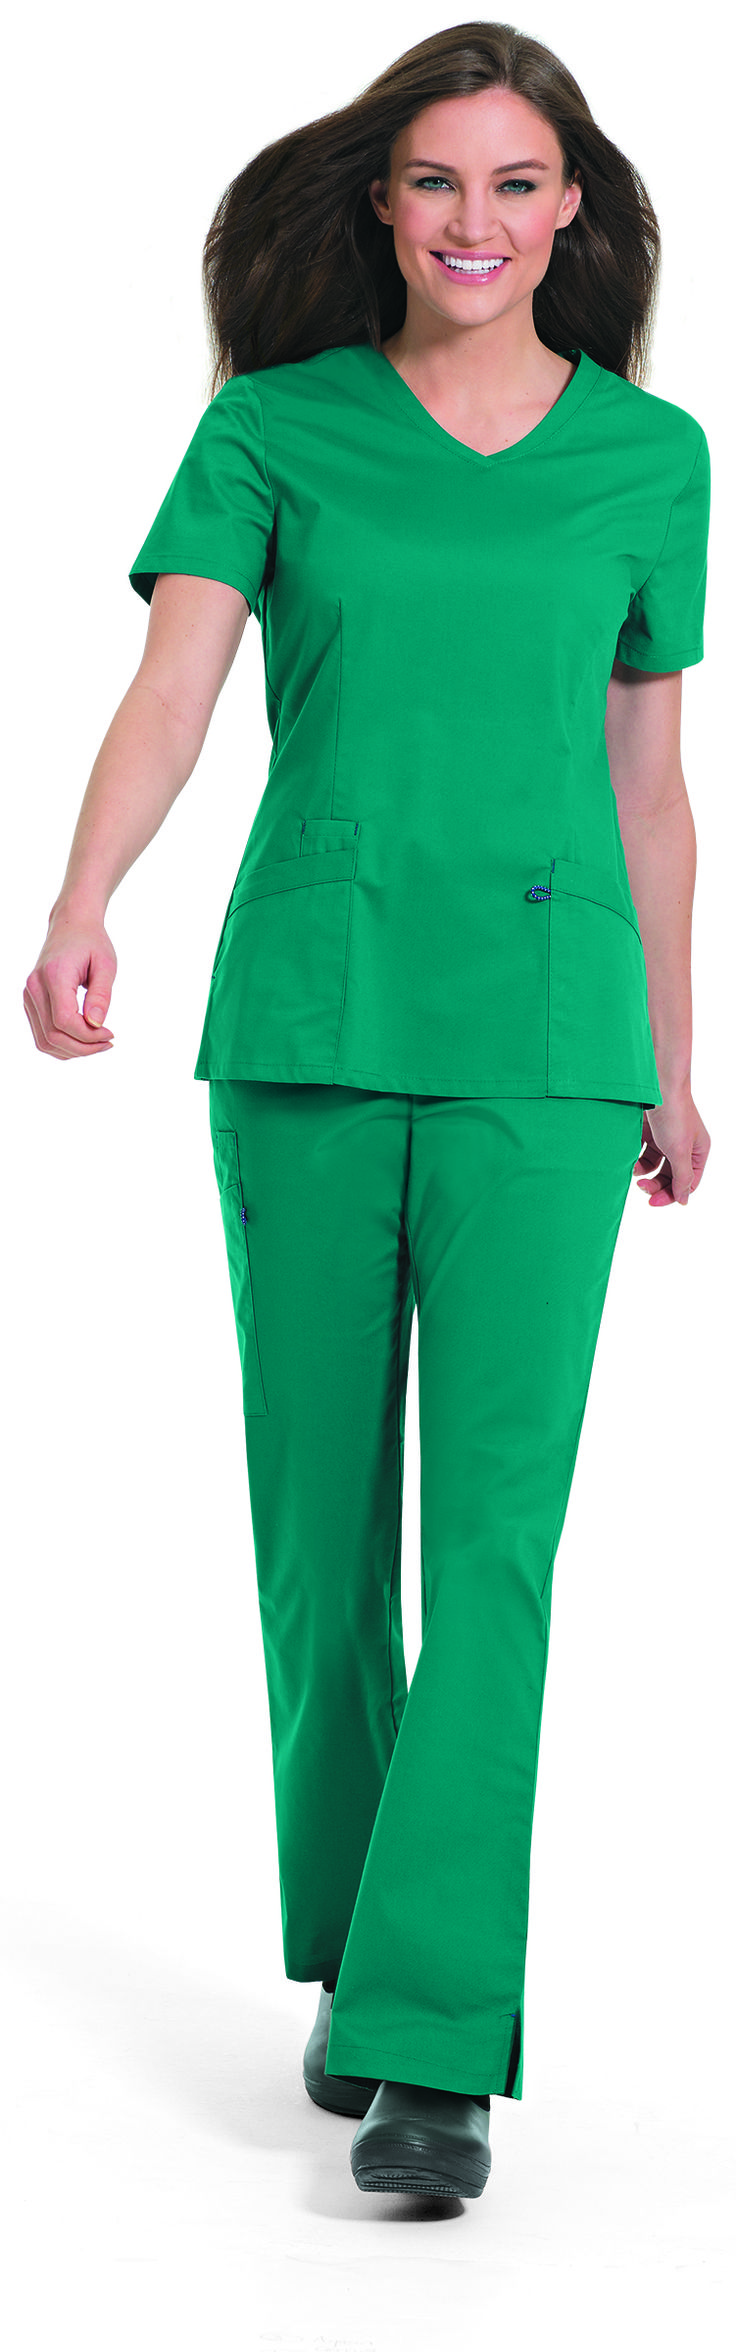 NEW! WorkFlow's 4115 Stretch V-Neck Tunic. Available in 10 colors.#landau #uniforms #medical #fashion #scrubs #workflow #stretch #mens #womens #styles #doctor #nurse #nursing #school #student #groups #vet #tech #assistant #rsvlmedical #trend